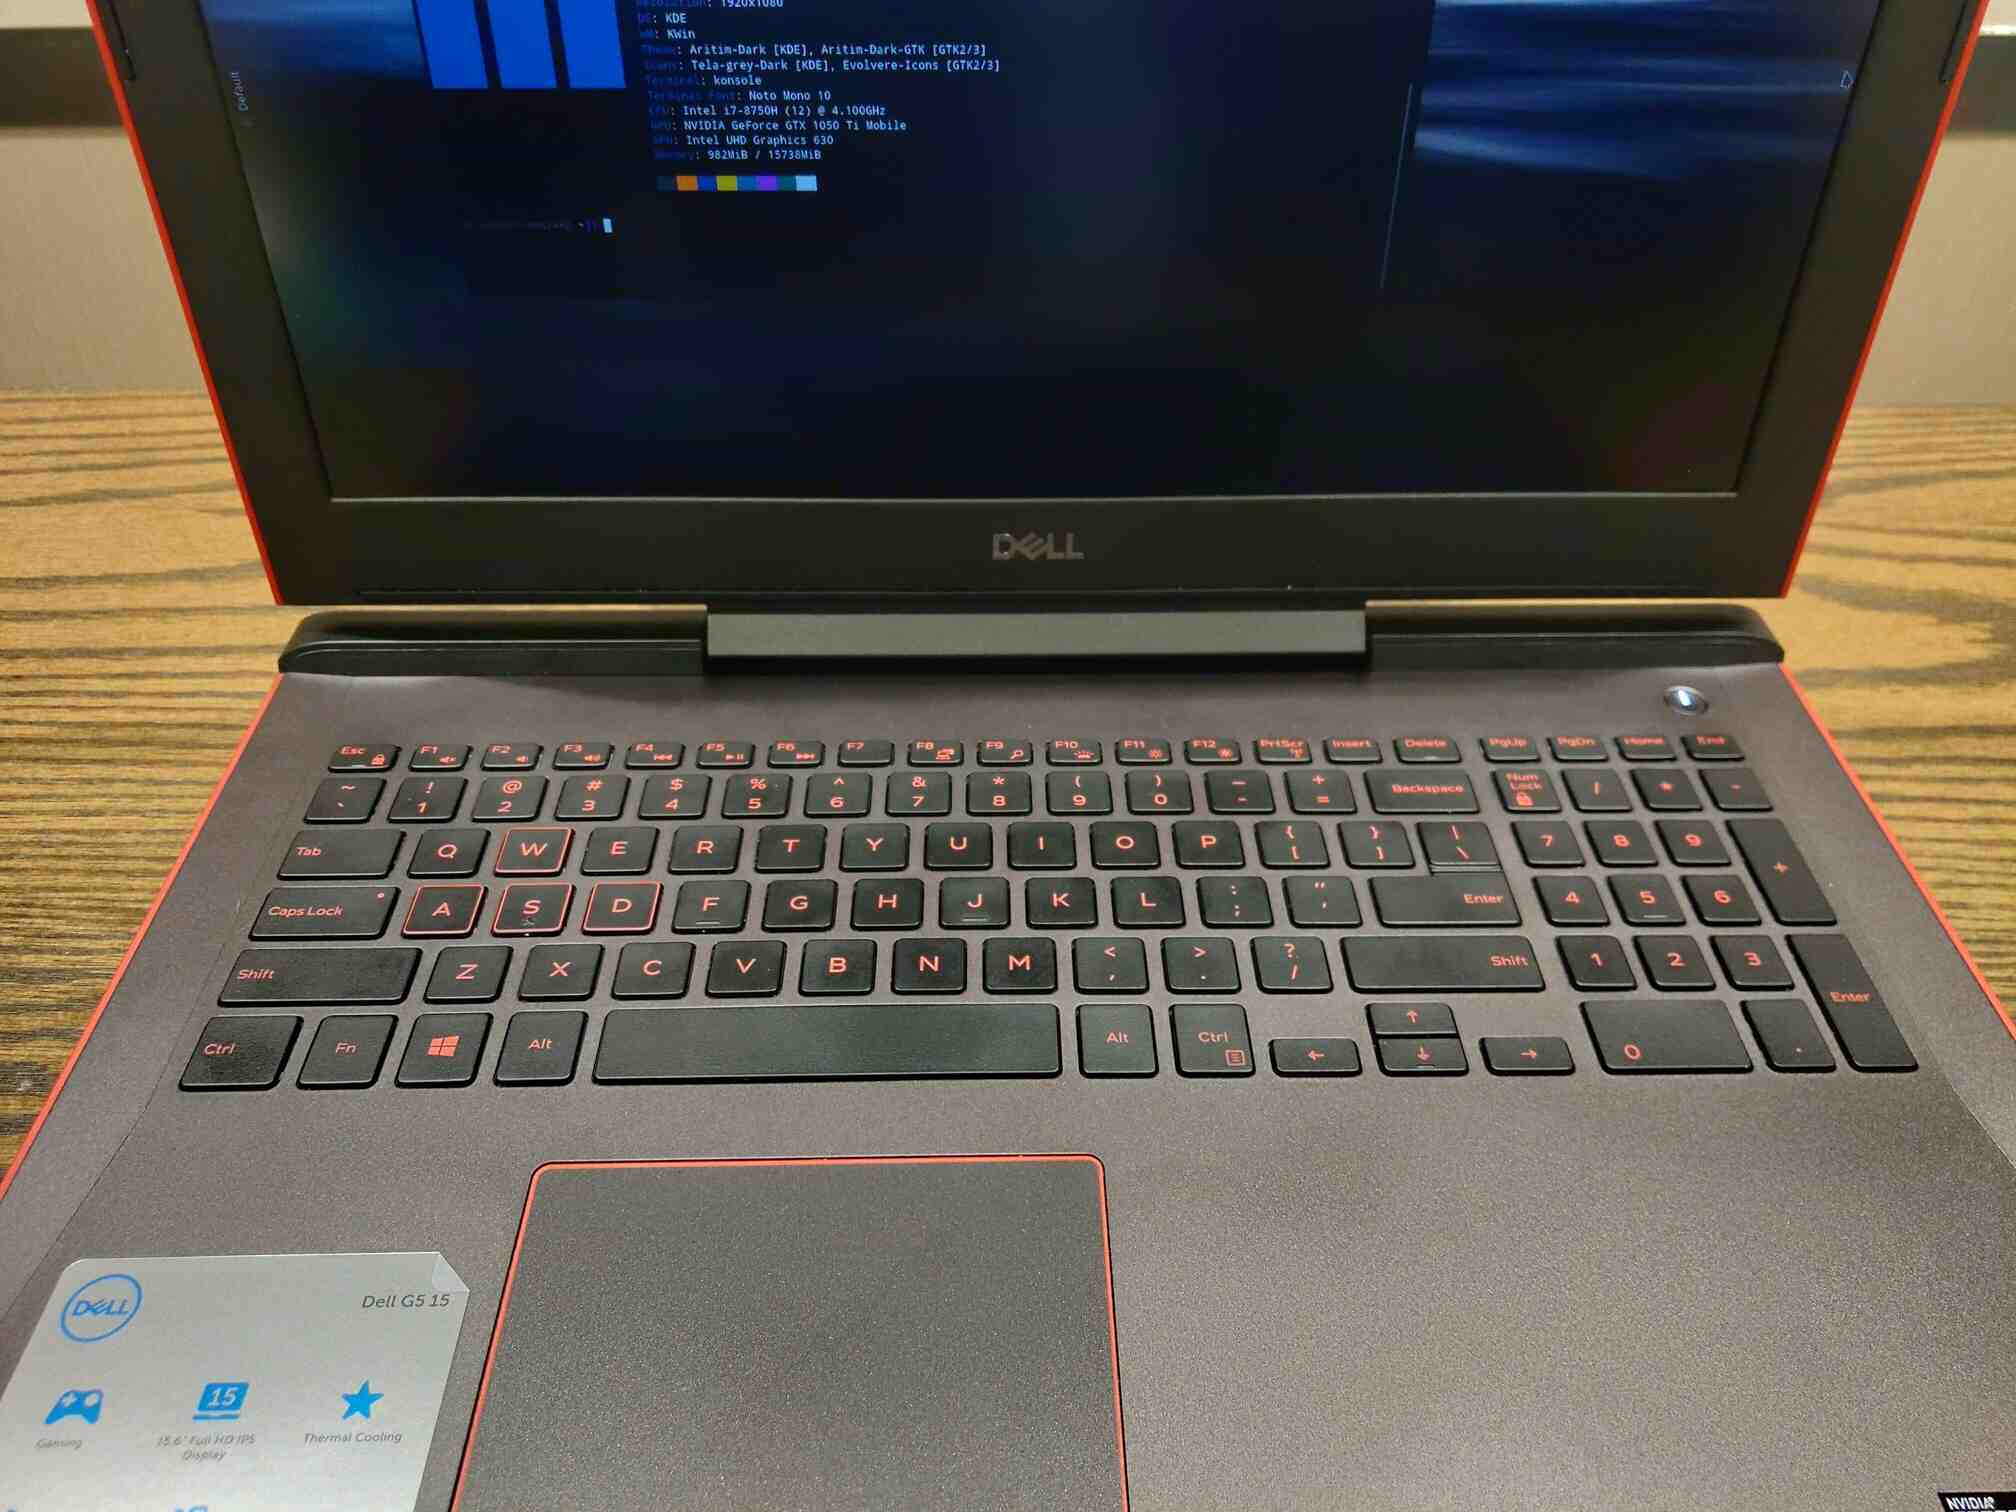 Dell G5-5587 Review for Linux Users [G5-5587-7037RED-PUS